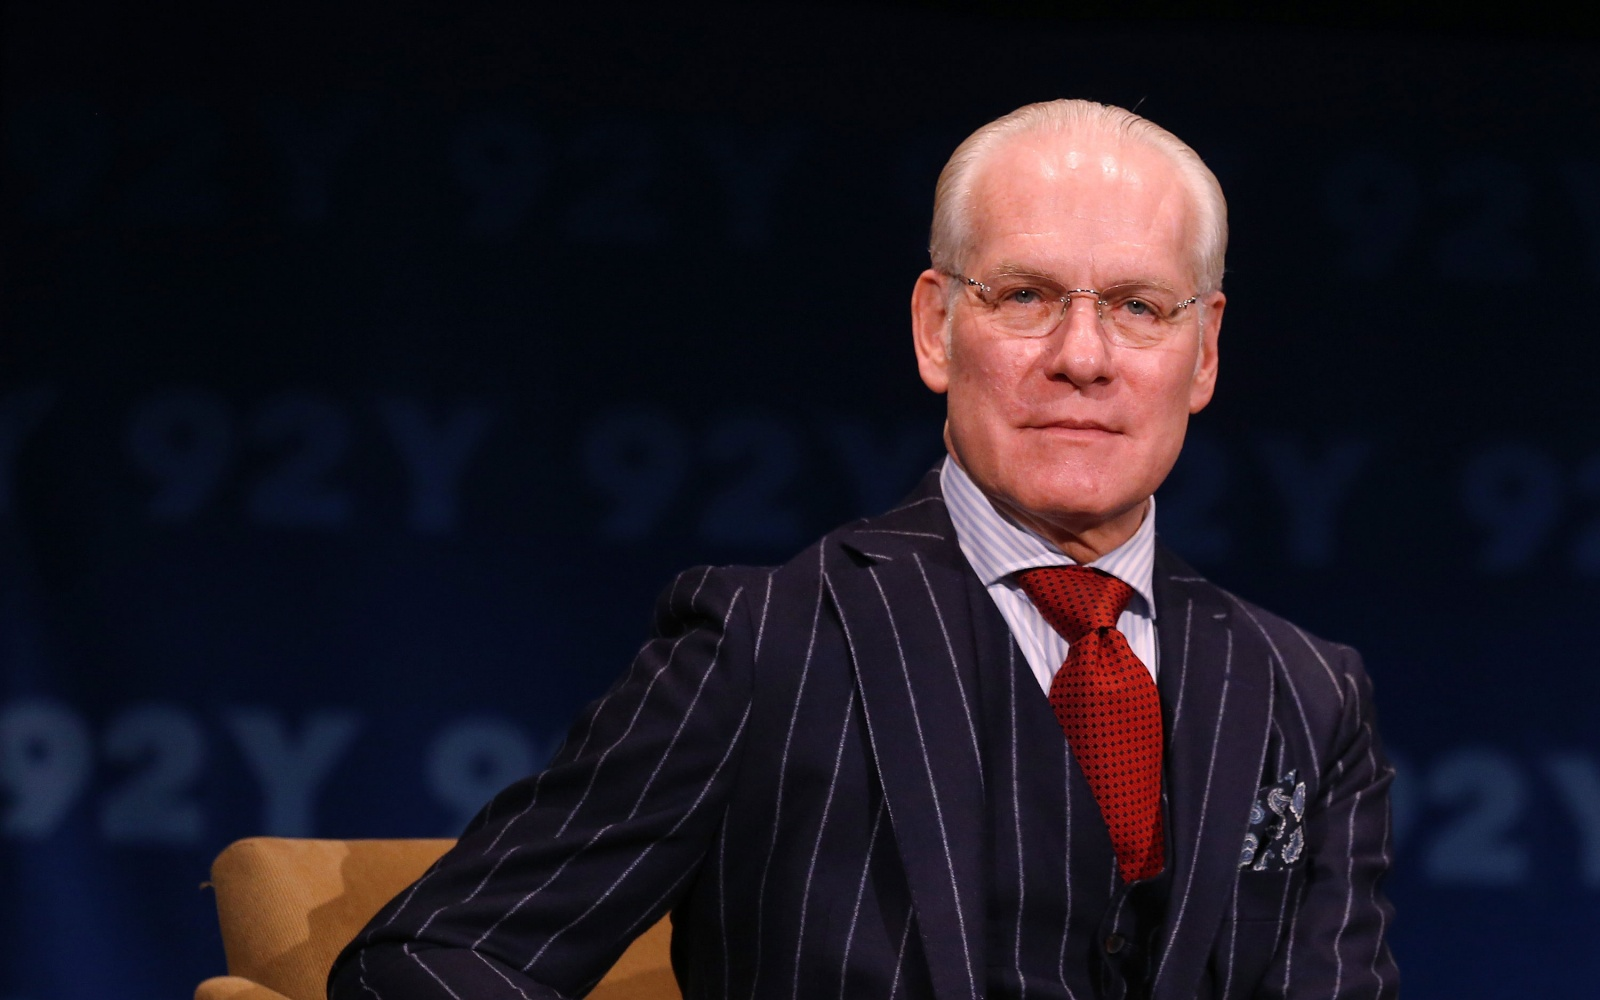 Travel Tips from Tim Gunn of Project Runway